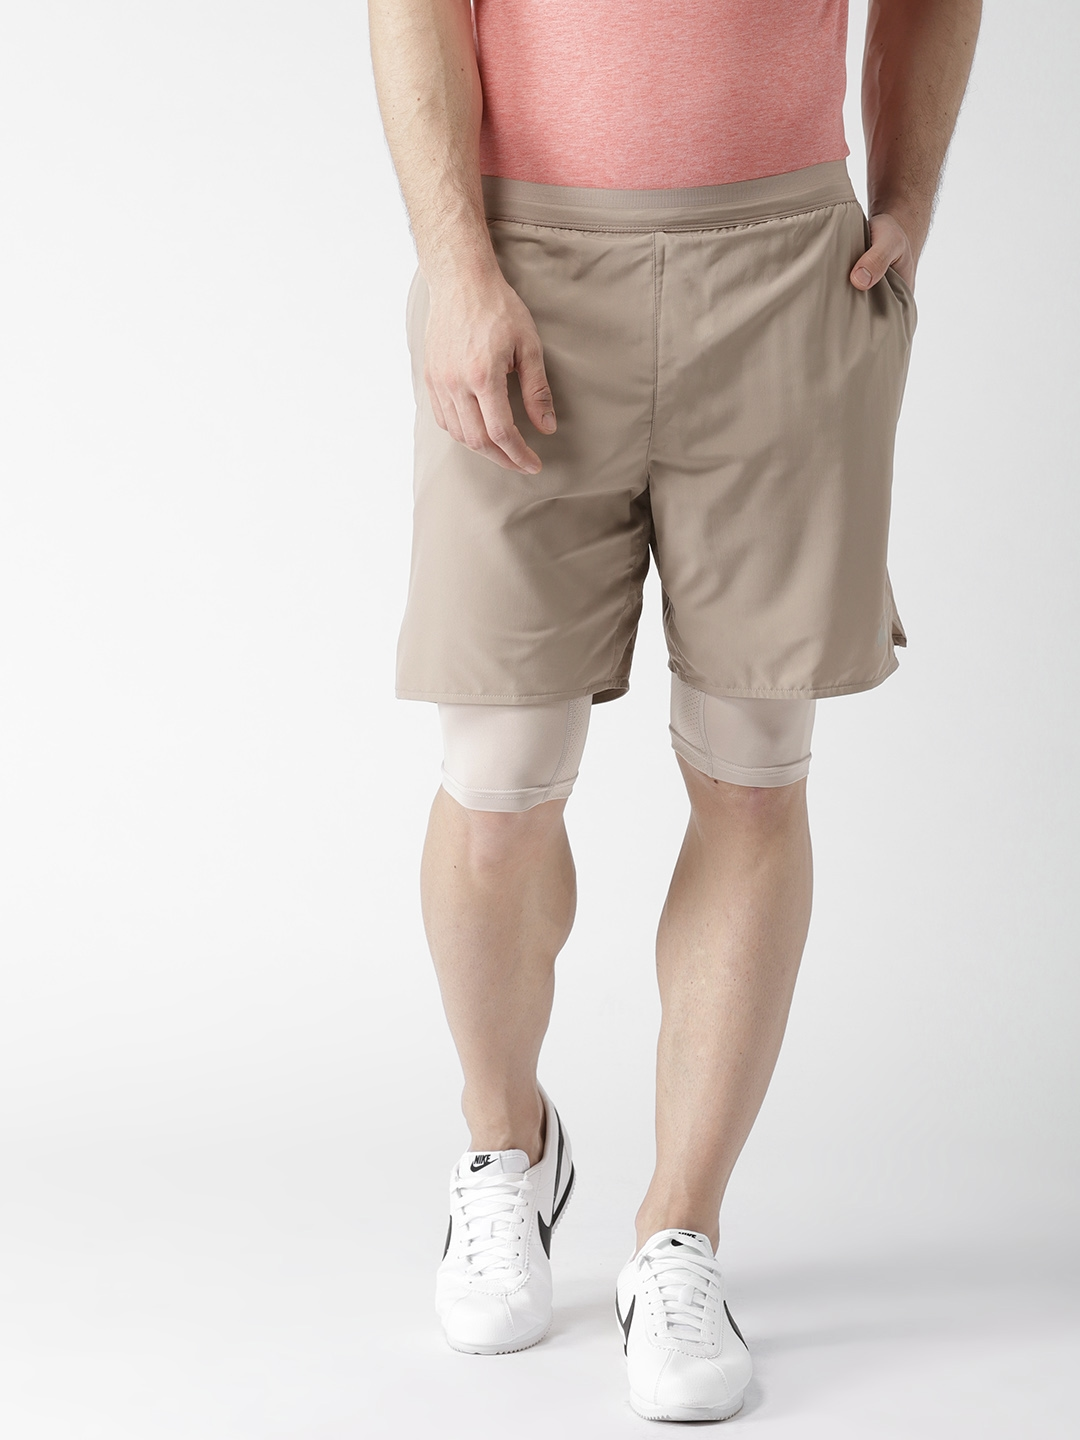 044bd25318fe Buy Nike Men Taupe AS Flex Stride 2 In 1 Running Shorts - Shorts for ...